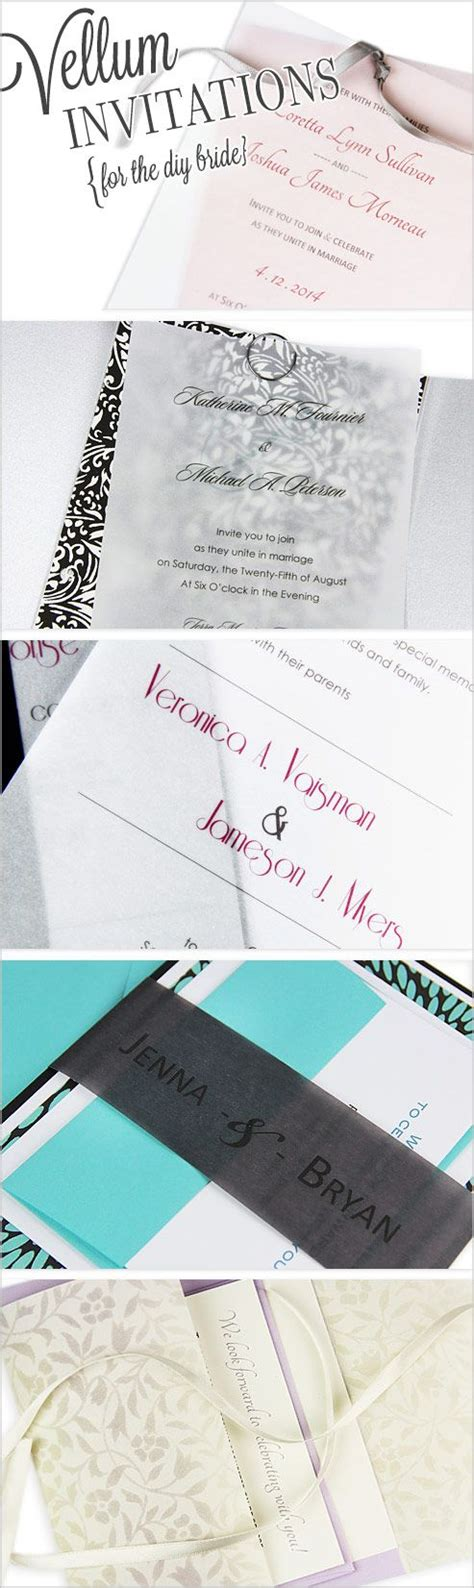 wedding invitations using vellum paper diy vellum invitation ideas translucent vellum paper